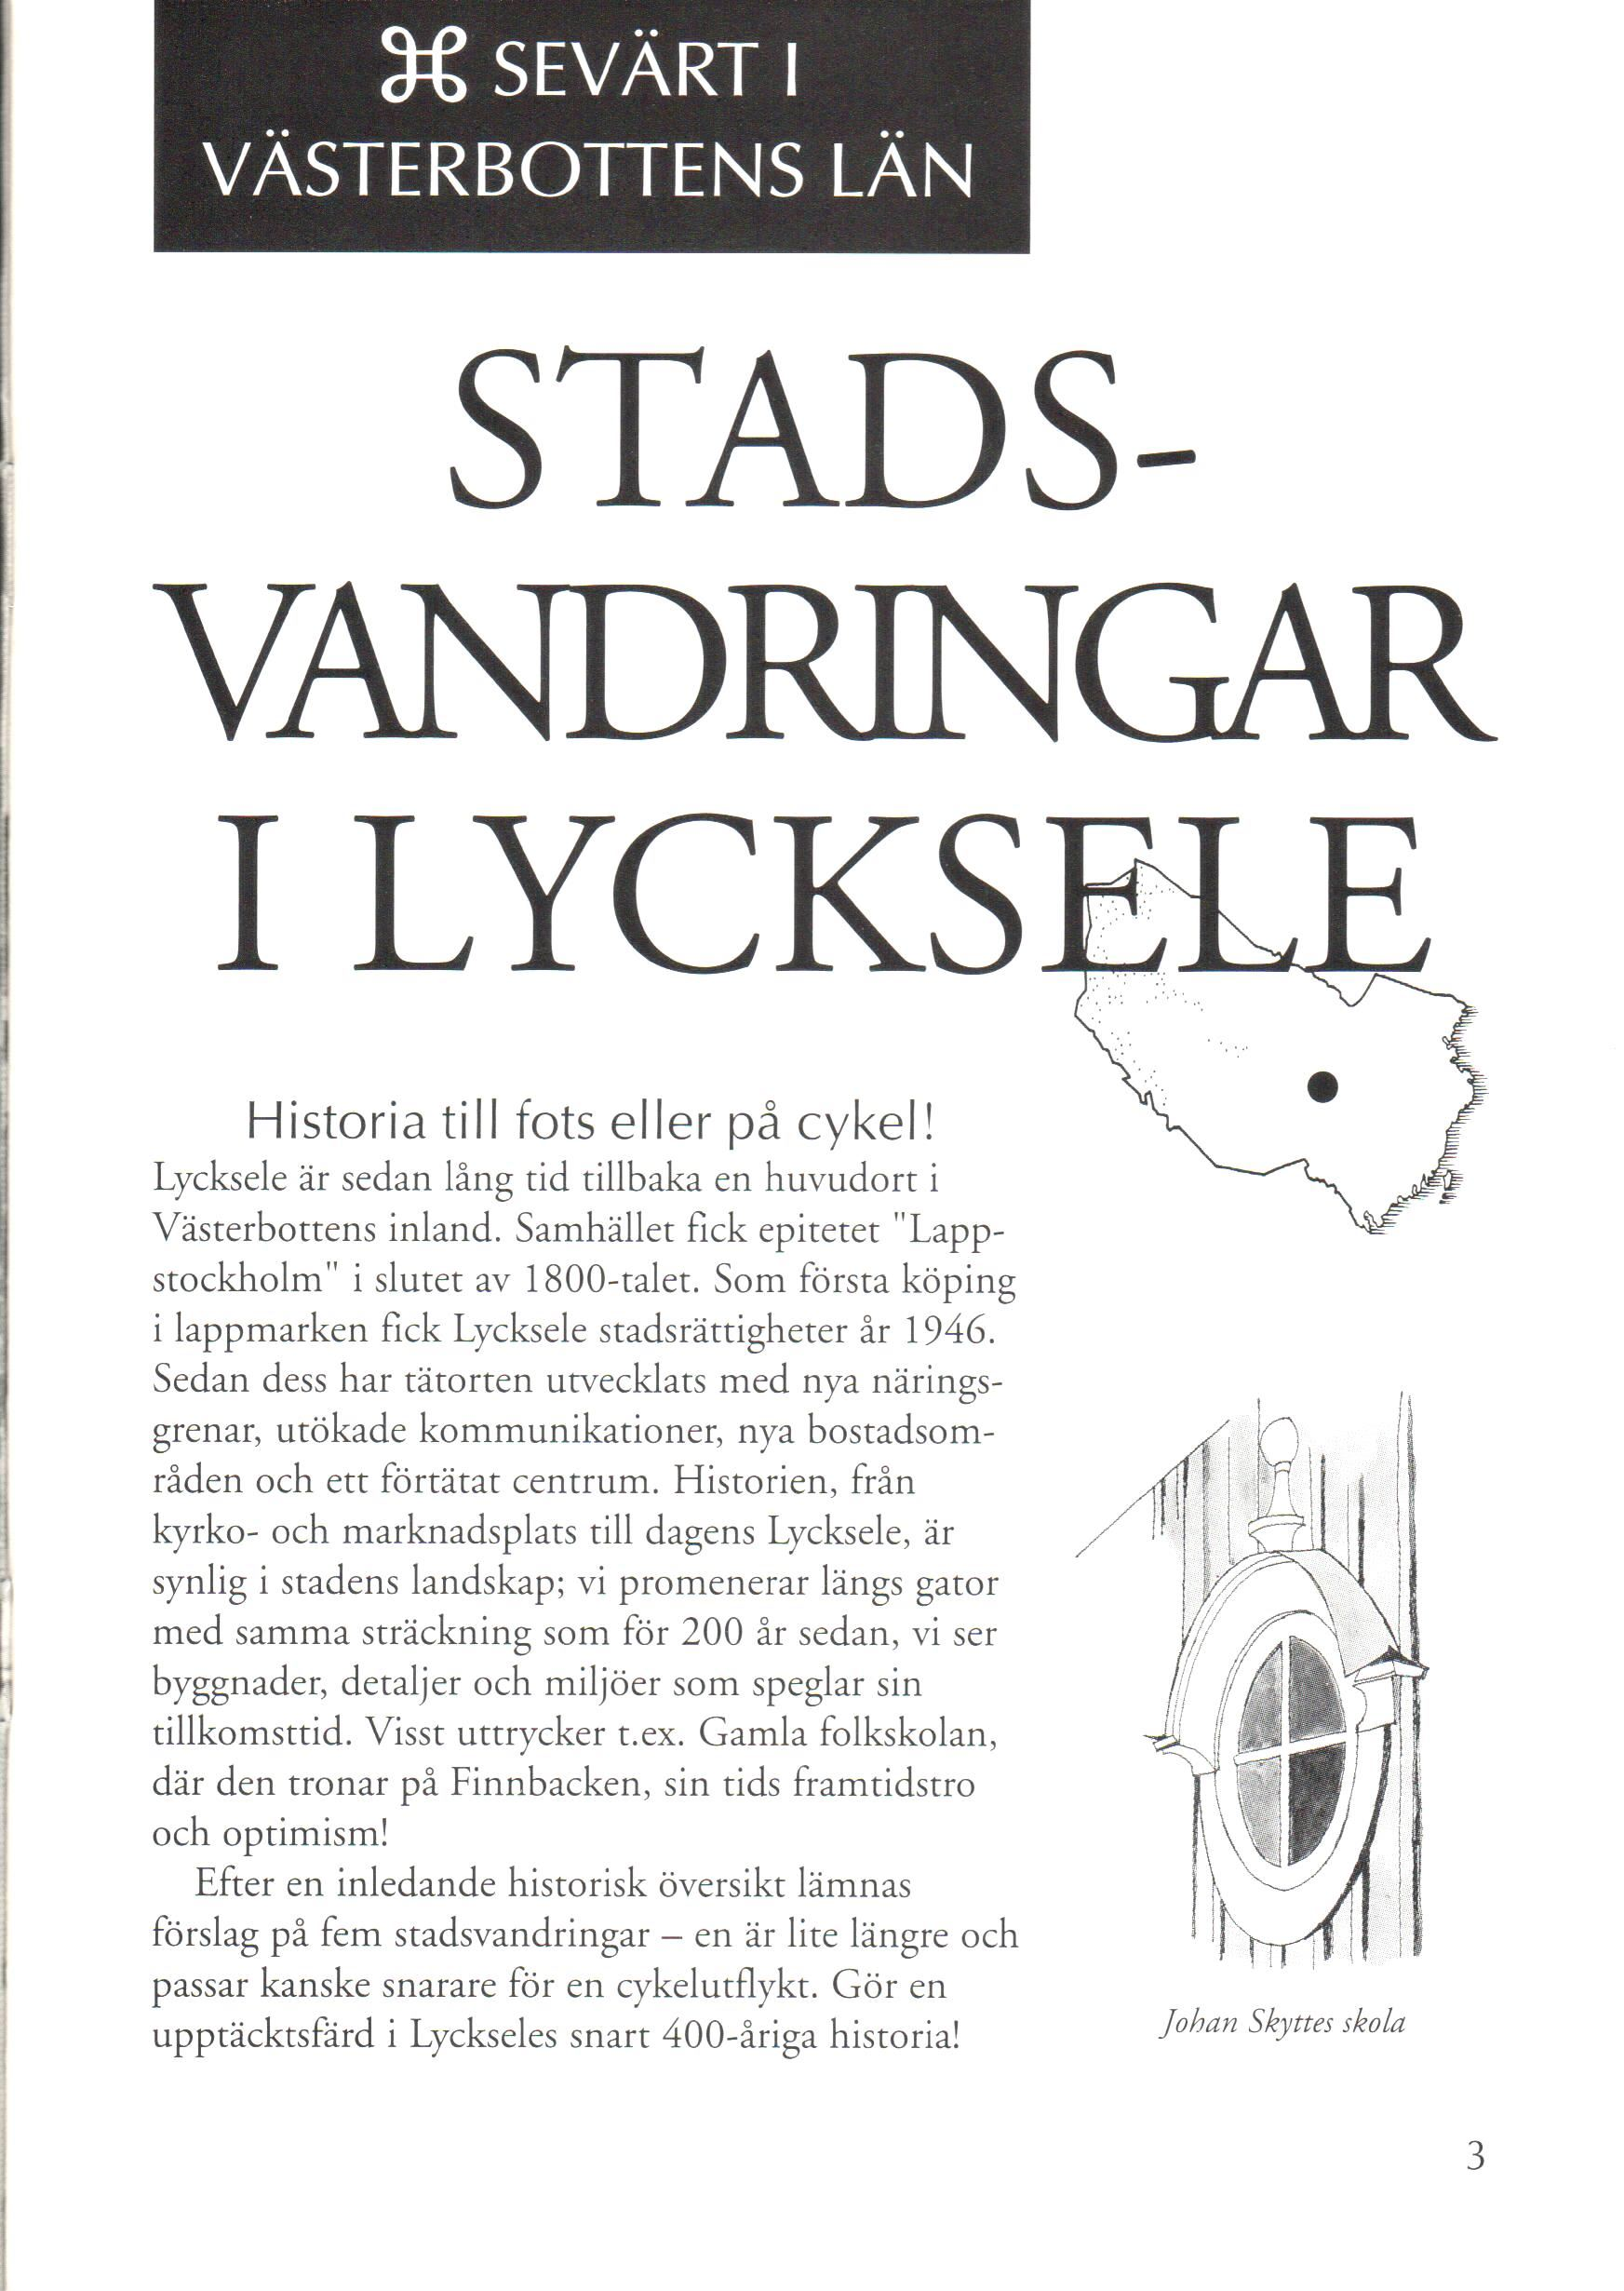 Historic City Walks in Lycksele